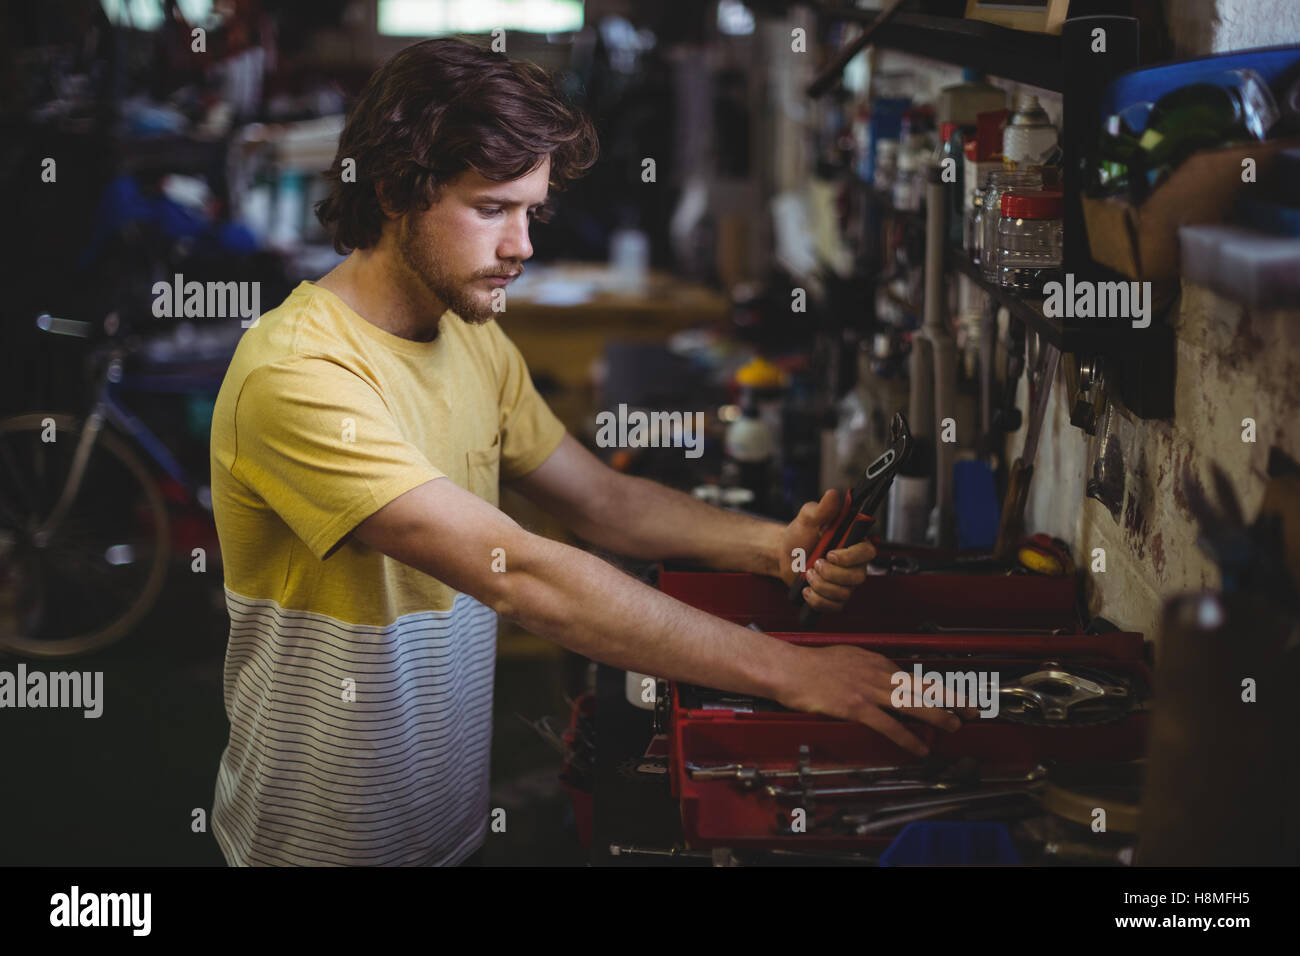 Mechanic selecting tools from toolbox - Stock Image